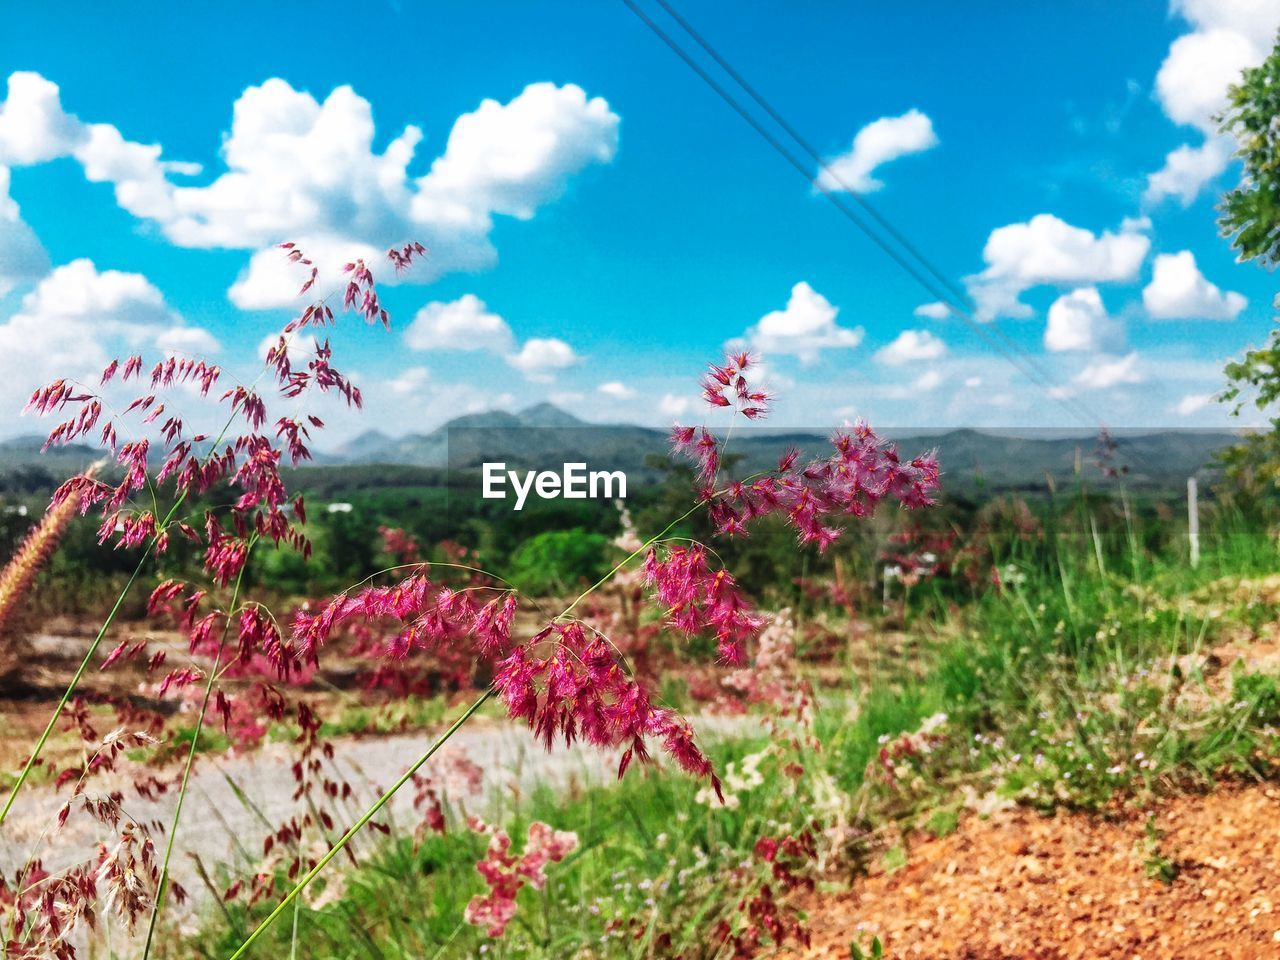 flowering plant, flower, plant, beauty in nature, cloud - sky, sky, growth, nature, day, landscape, freshness, no people, field, pink color, scenics - nature, land, environment, tranquil scene, tranquility, fragility, outdoors